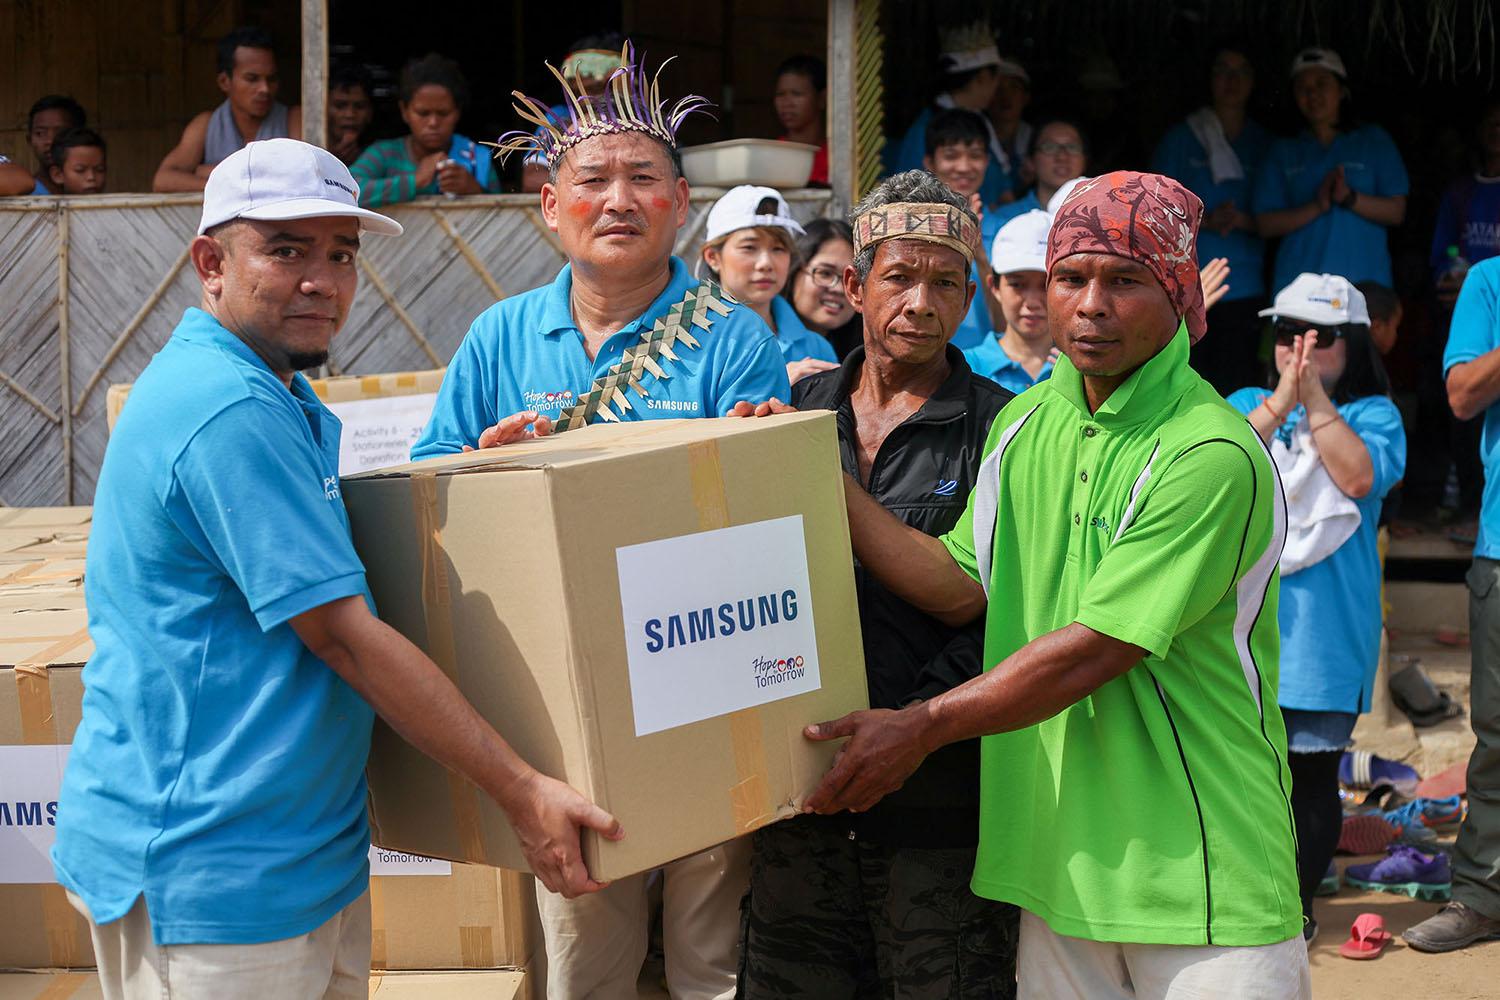 Giving Light and Love Through Samsung Love & Care